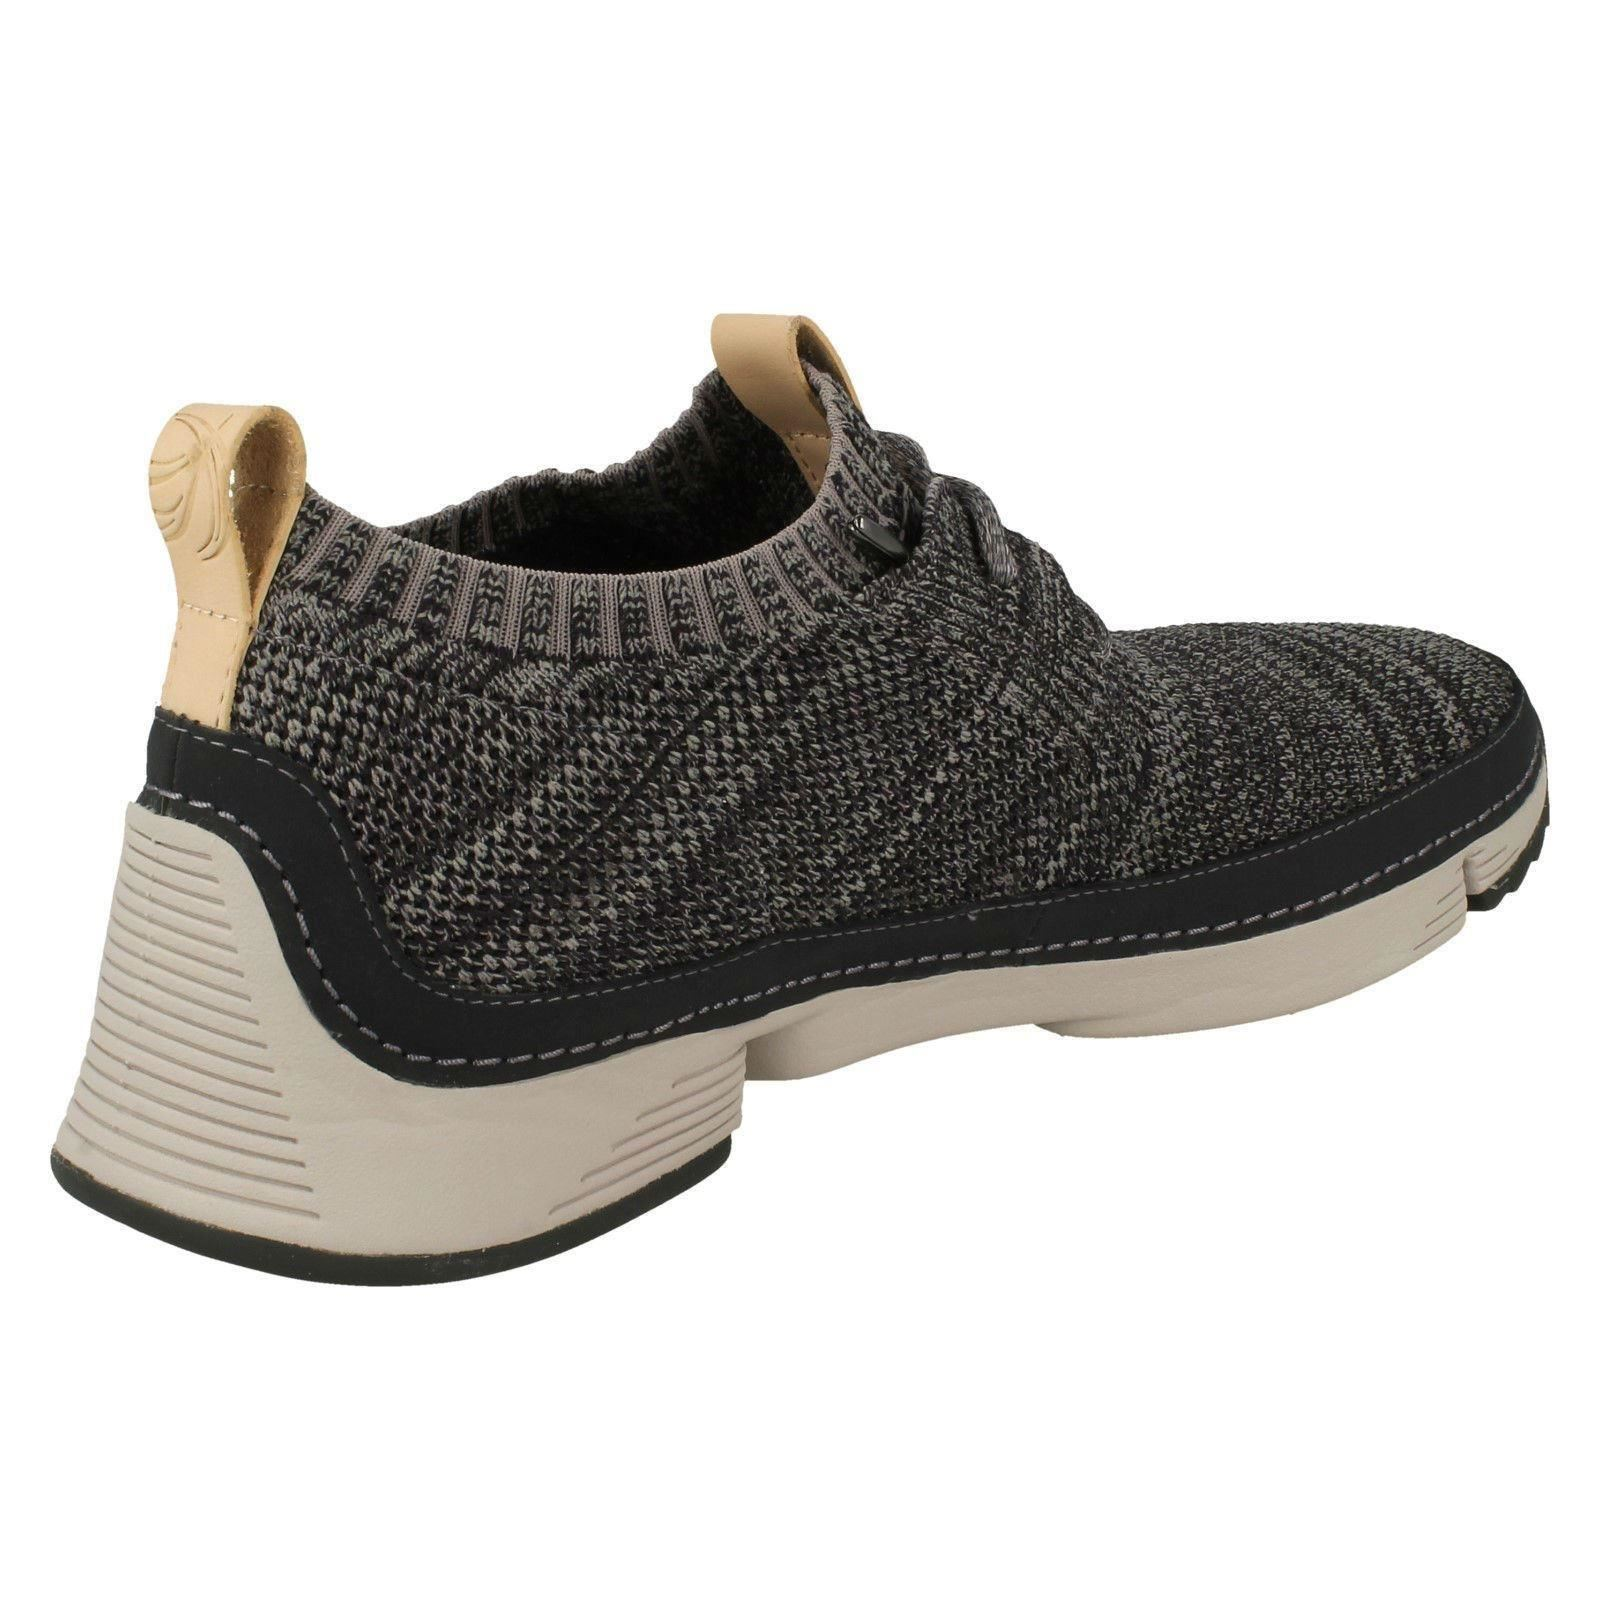 Mens-Clarks-Casual-Lace-Up-Trainers-Tri-Native thumbnail 5